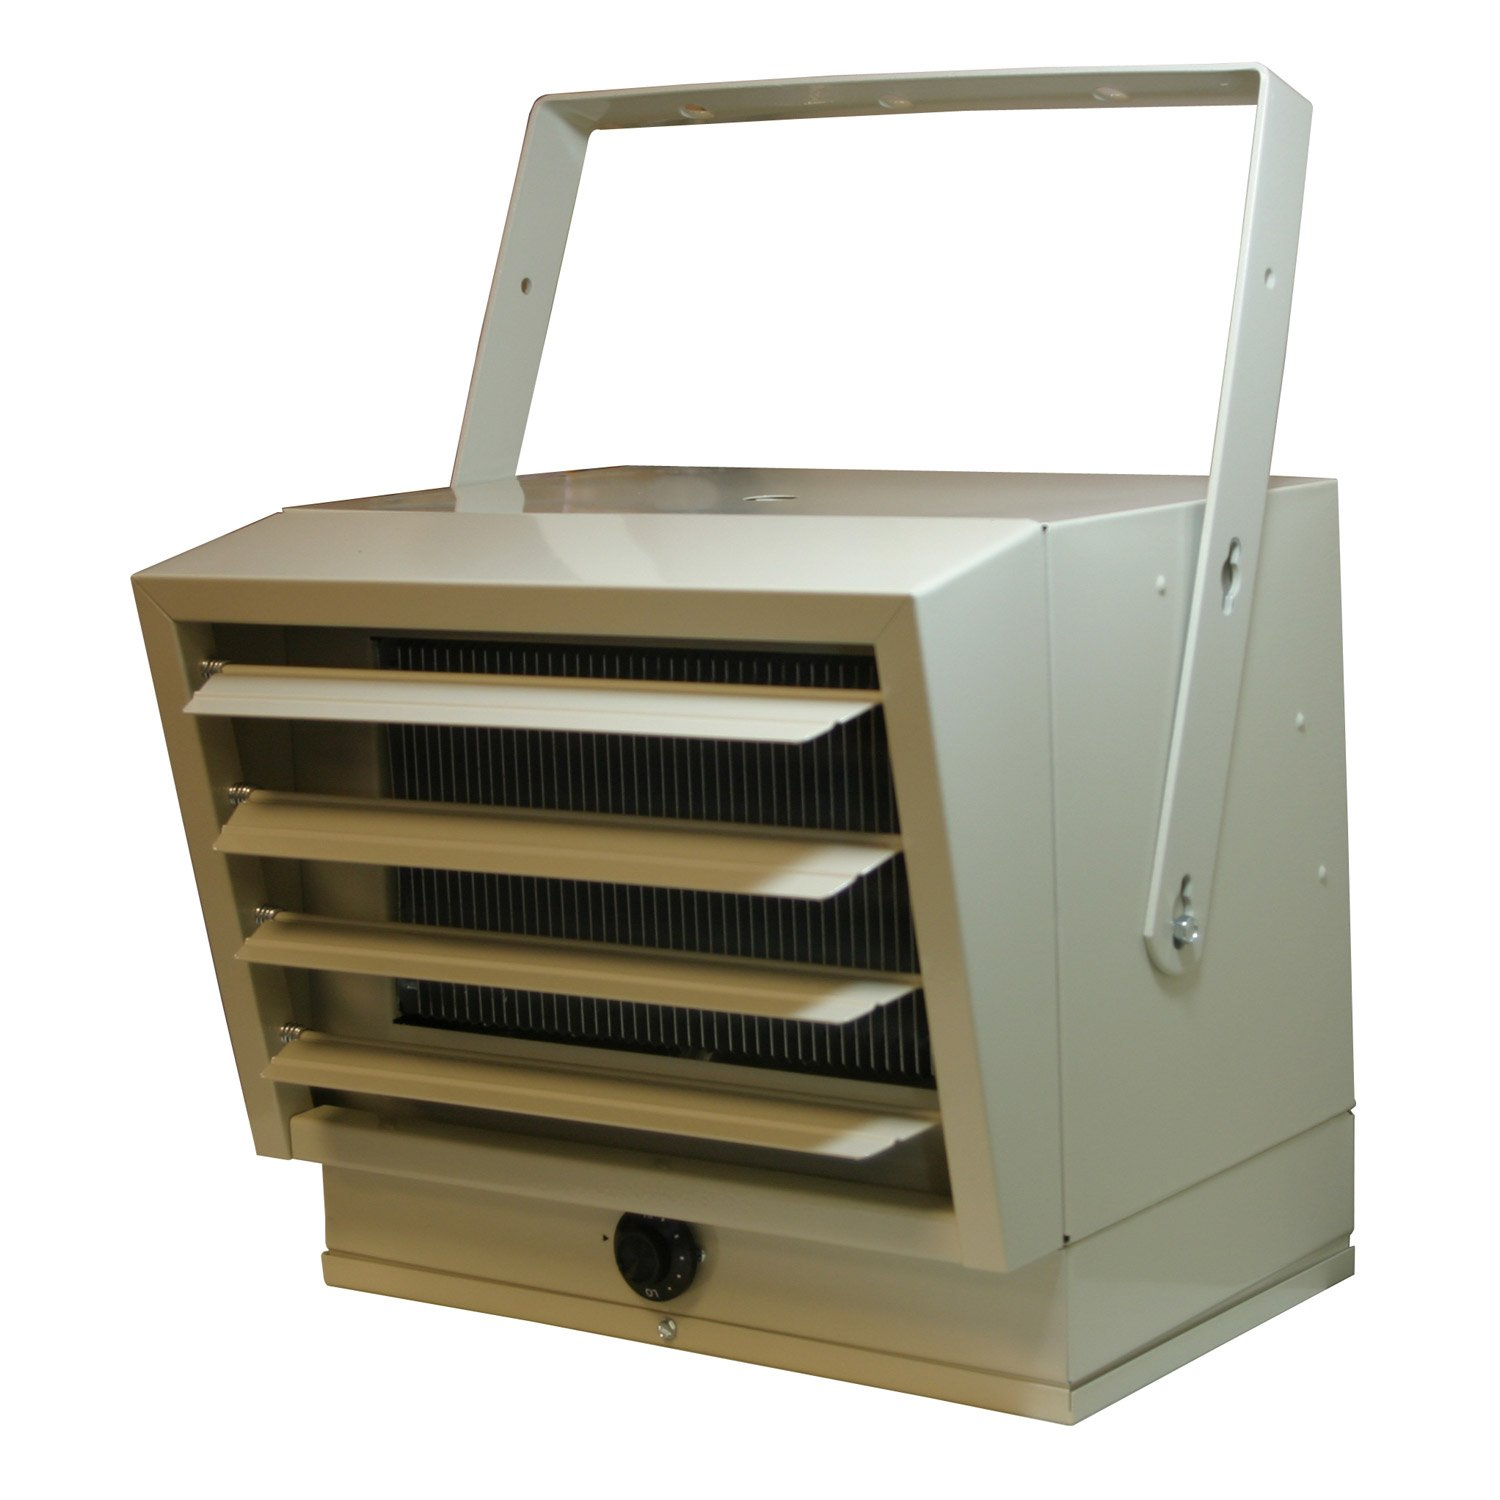 71pS9jRHVSL._SL1500_ fahrenheat ceiling mount industrial heater 7500 watt, model Fahrenheat Heaters Website at alyssarenee.co